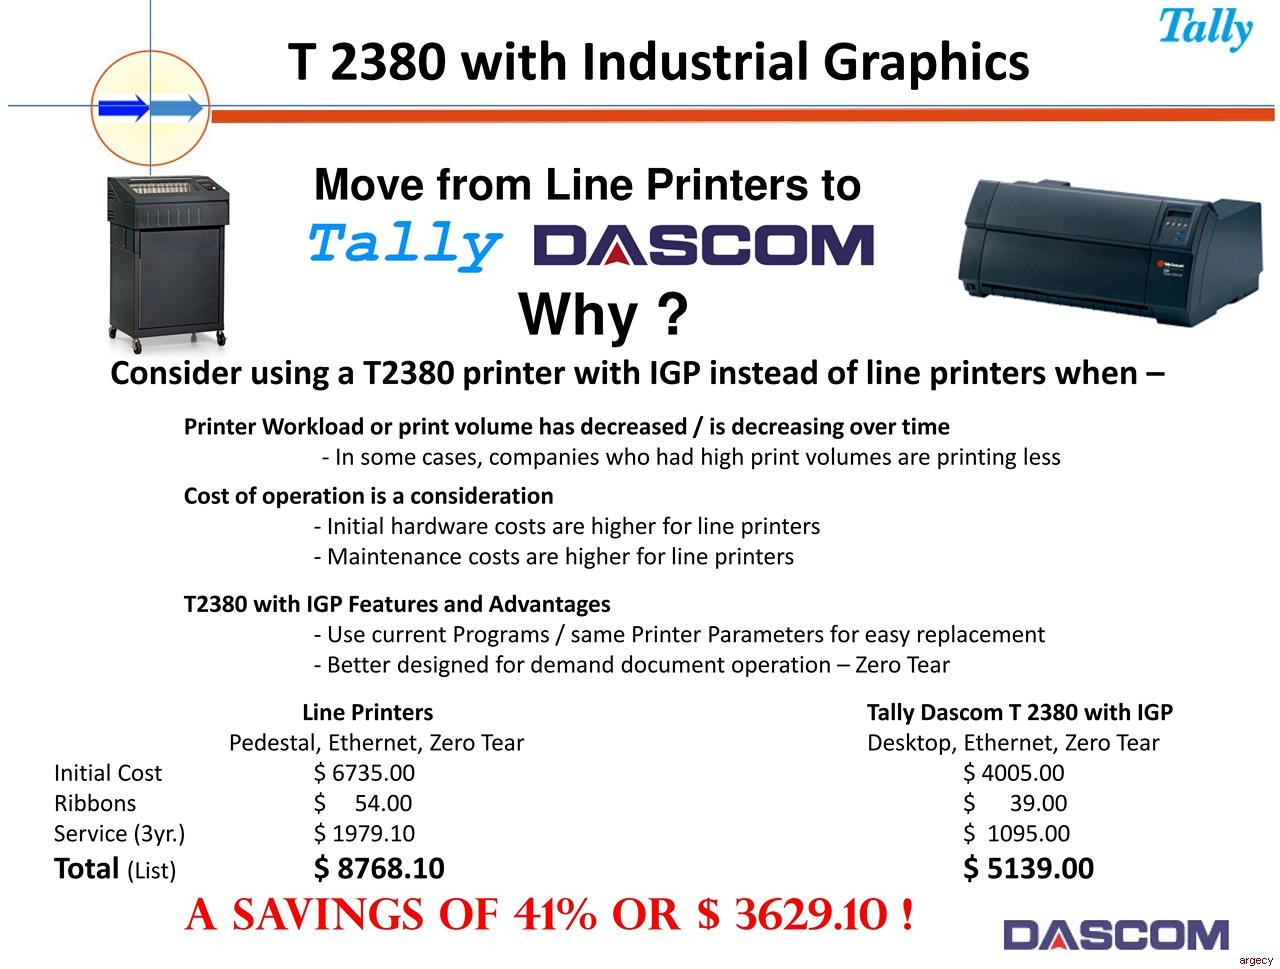 Reasons to move from line printers to Tally Dascom